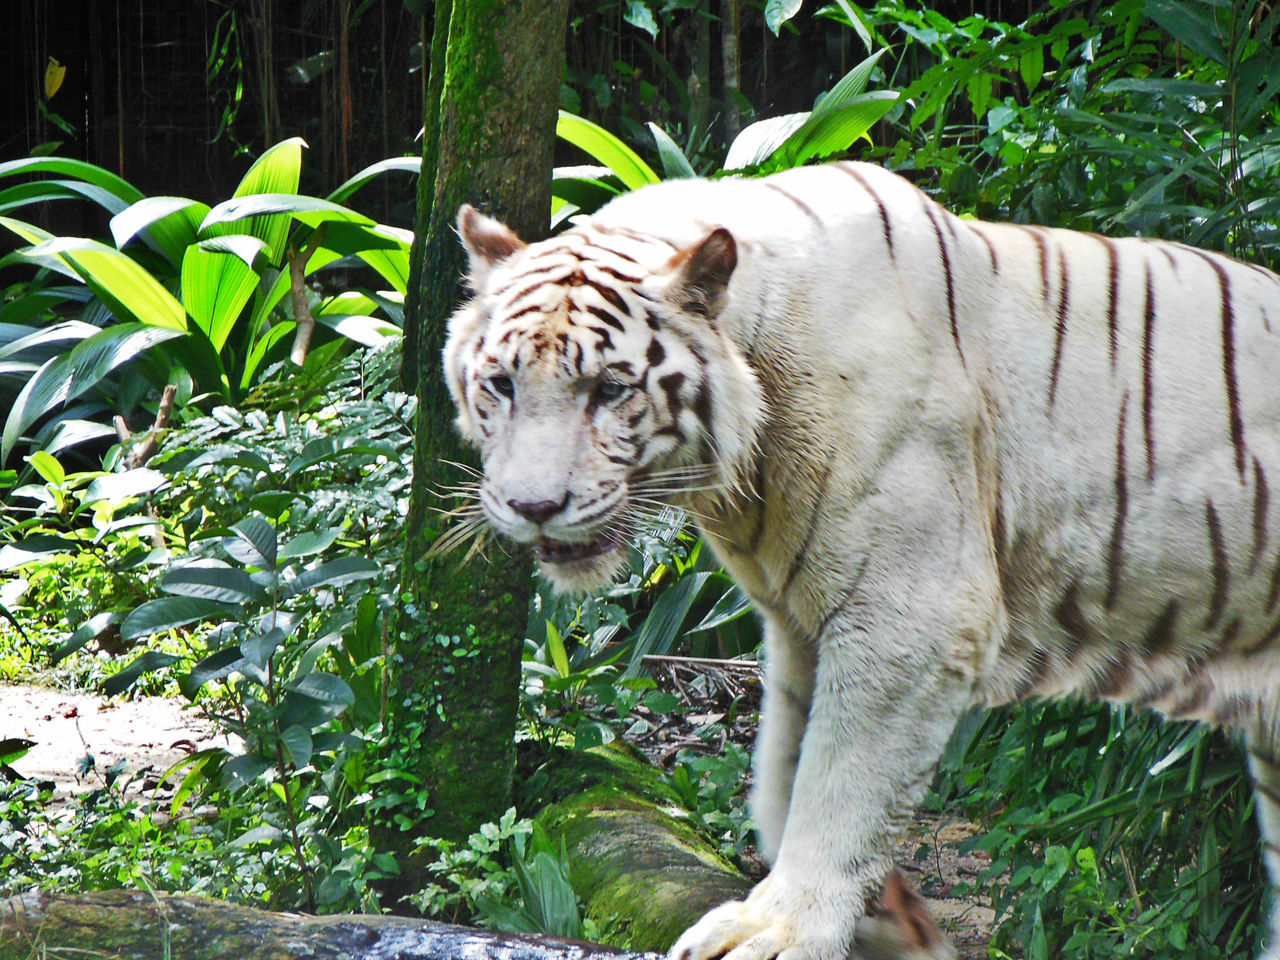 Animal Themes Animal Wildlife Animals In The Wild Close-up Animal Mammal Nature Singapore Zoological Garden Tiger White Tiger Wild Life